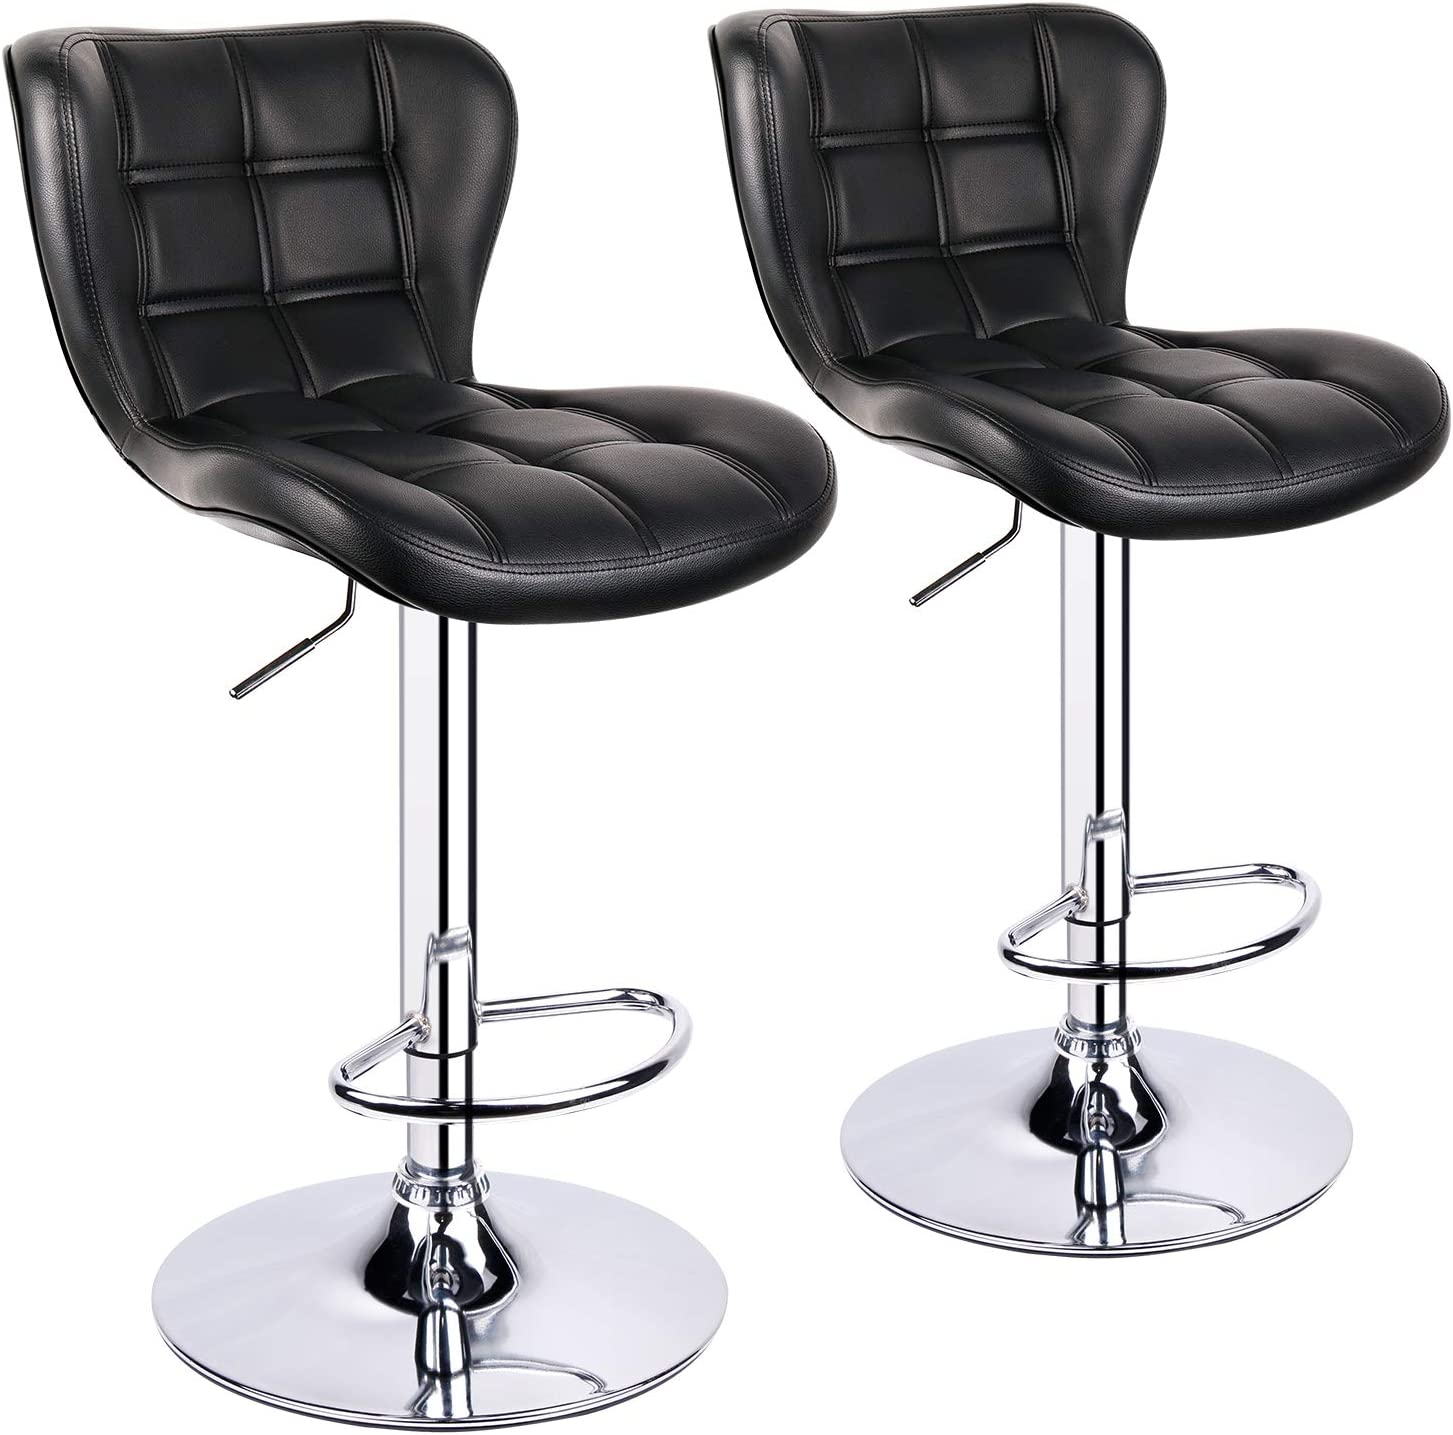 Leopard Shell Back Adjustable Bar Stool with Stools - Super Louisville-Jefferson County Mall Special SALE held Swivel